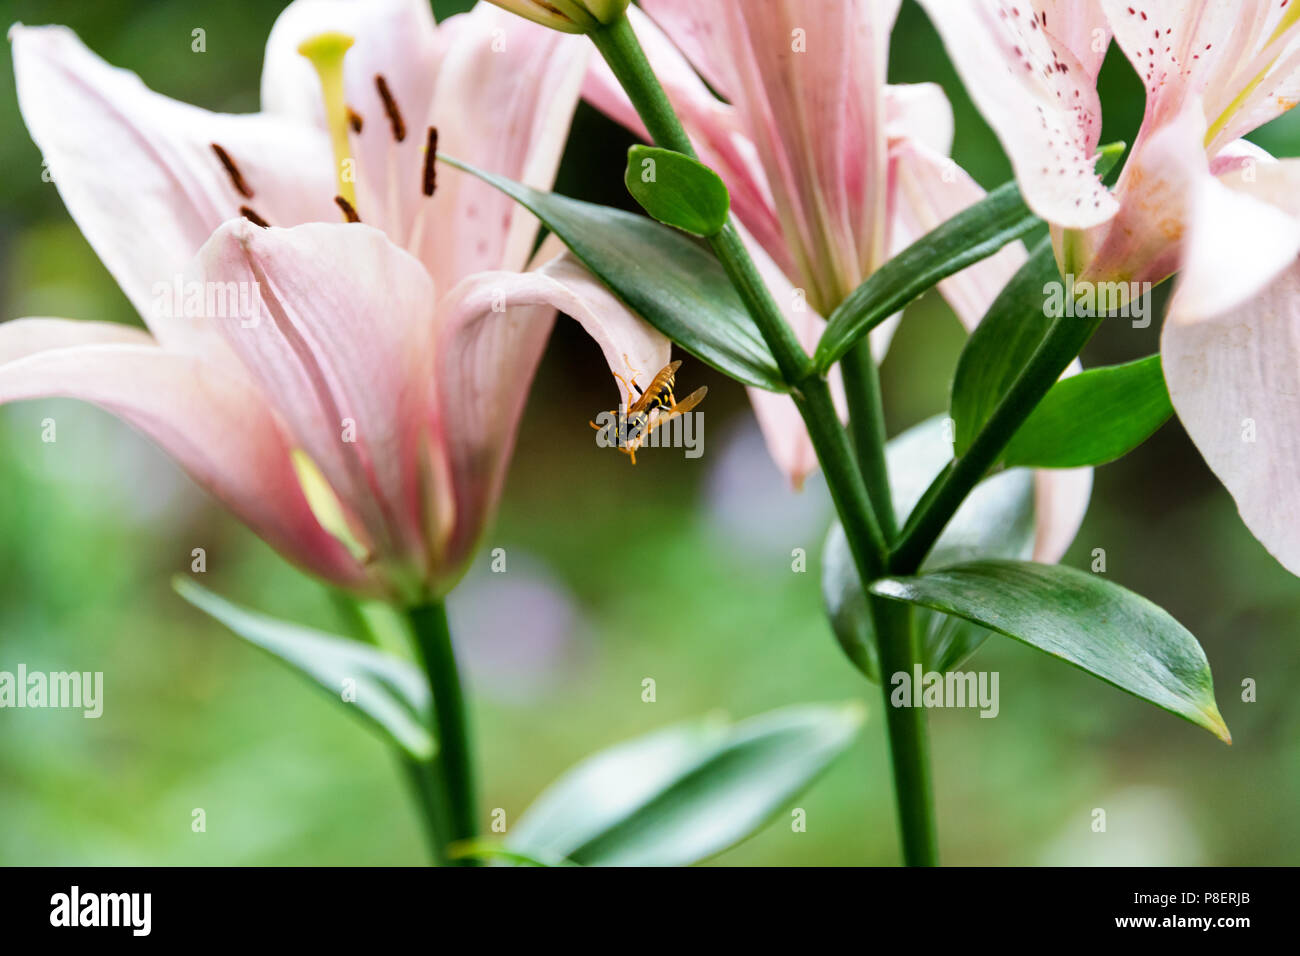 Beautiful lily flowers on green leaves background wasp sits on the beautiful lily flowers on green leaves background wasp sits on the flower lilium longiflorum flowers in the garden izmirmasajfo